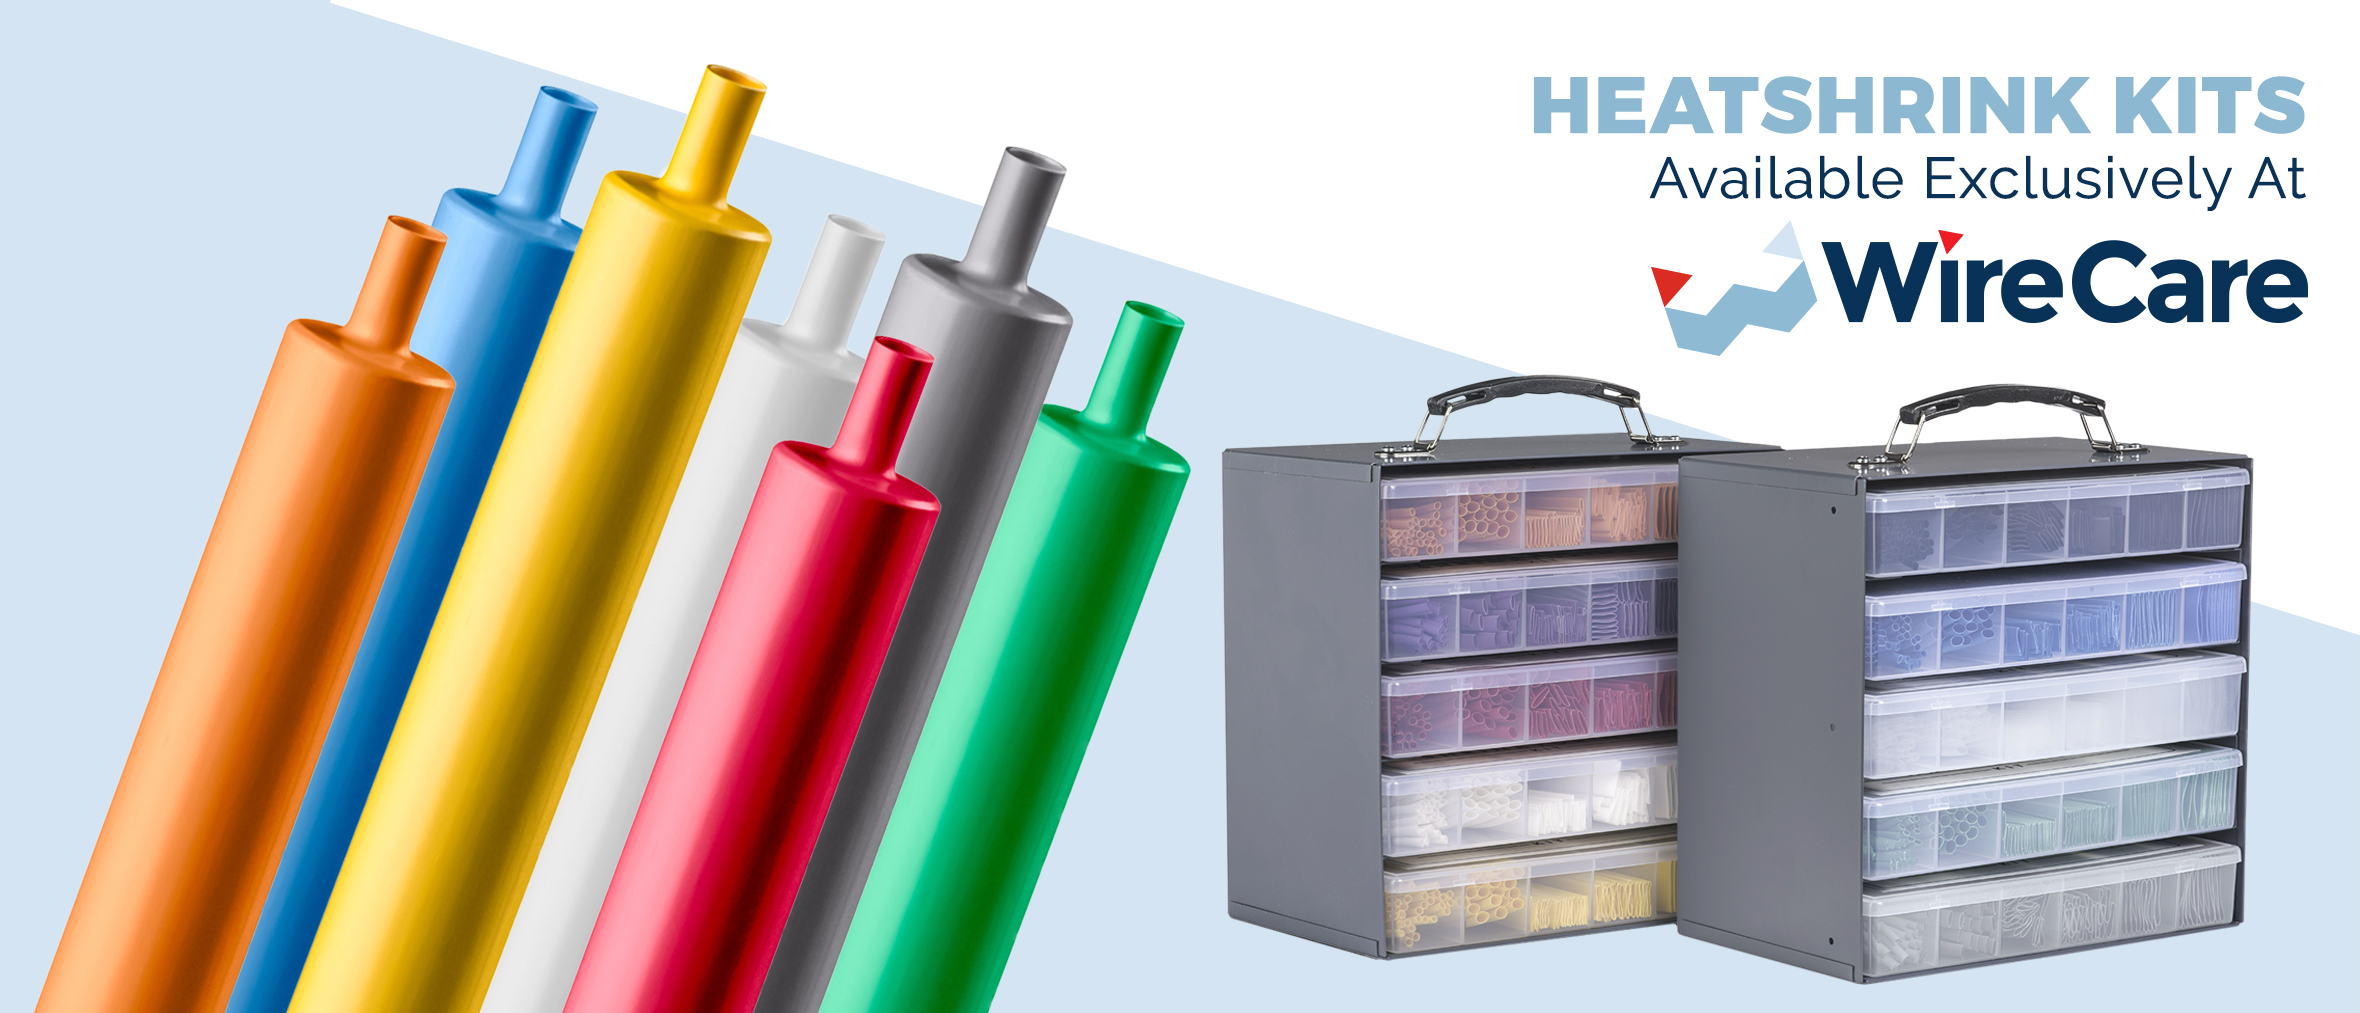 Heatshrink Kits